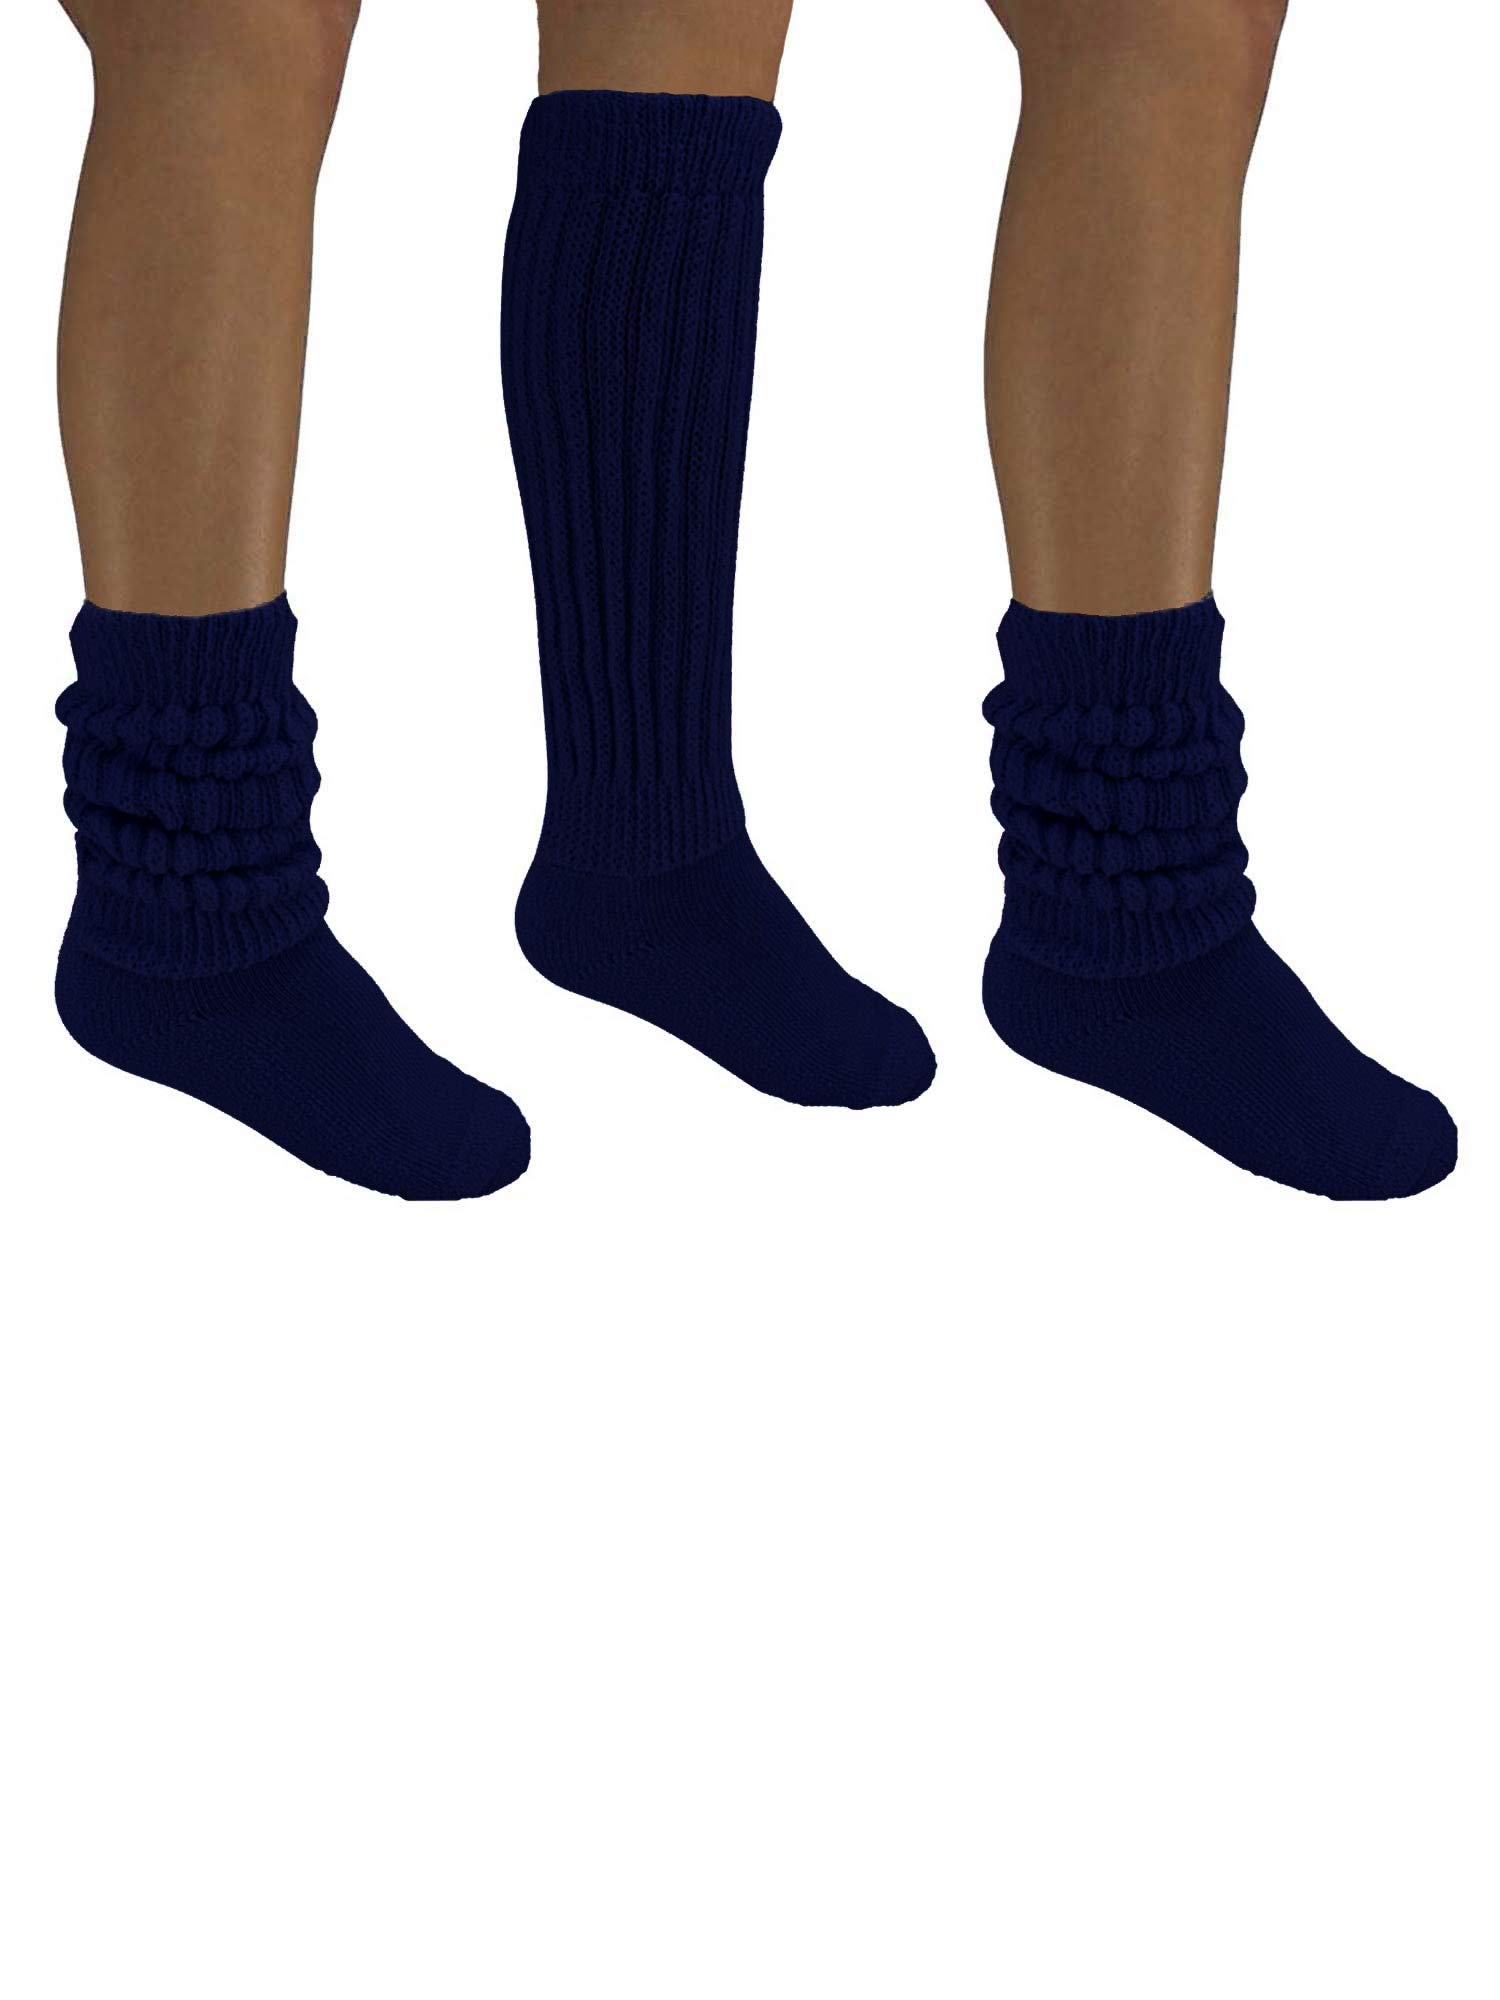 Navy Blue All Cotton 3 Pack Extra Heavy Slouch Socks